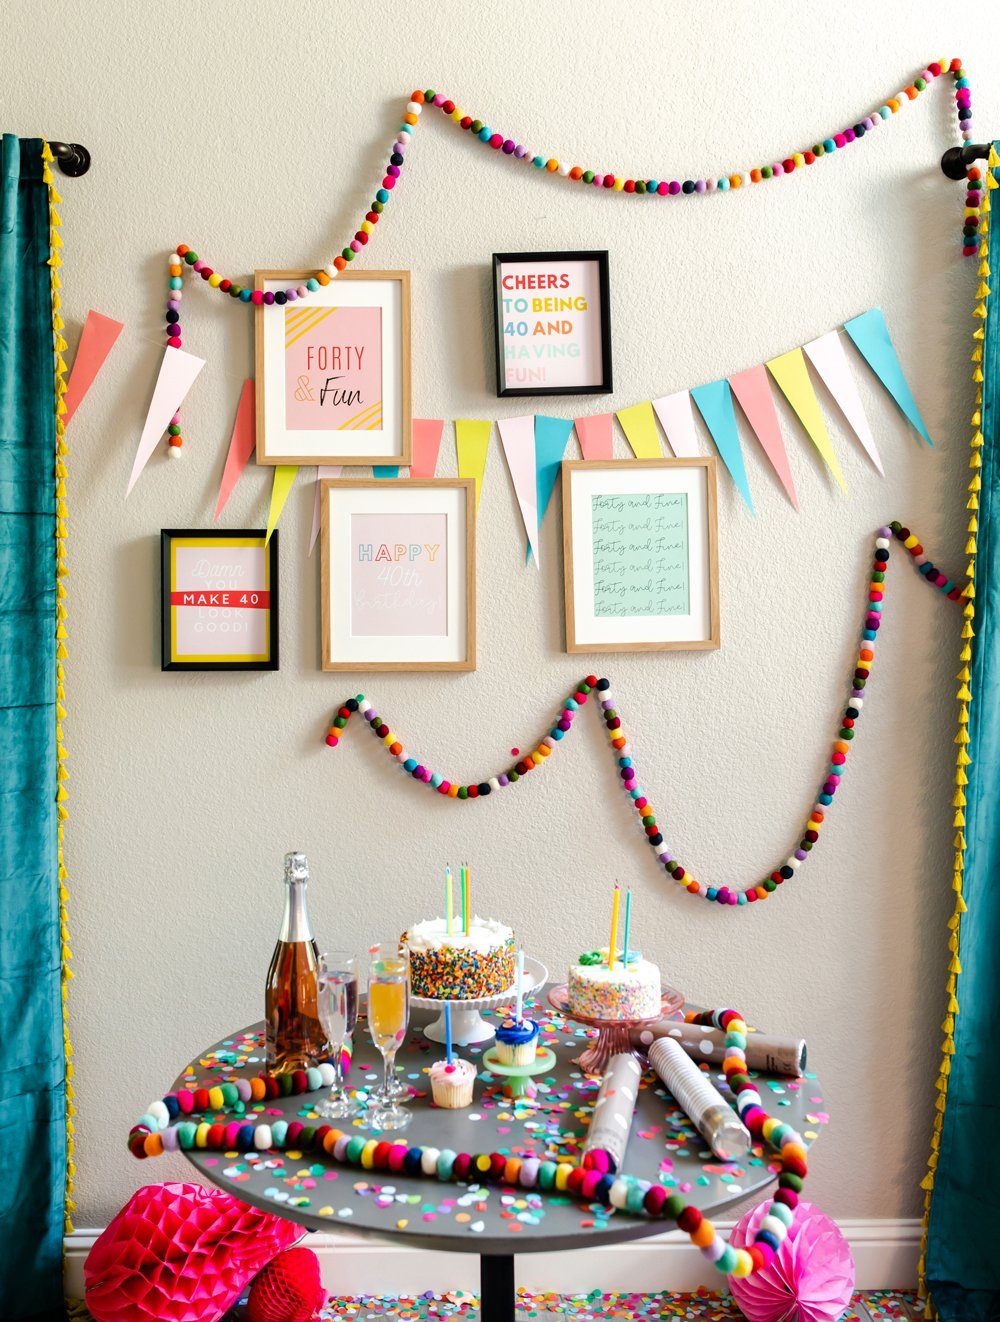 40th birthday party quotes poster decor